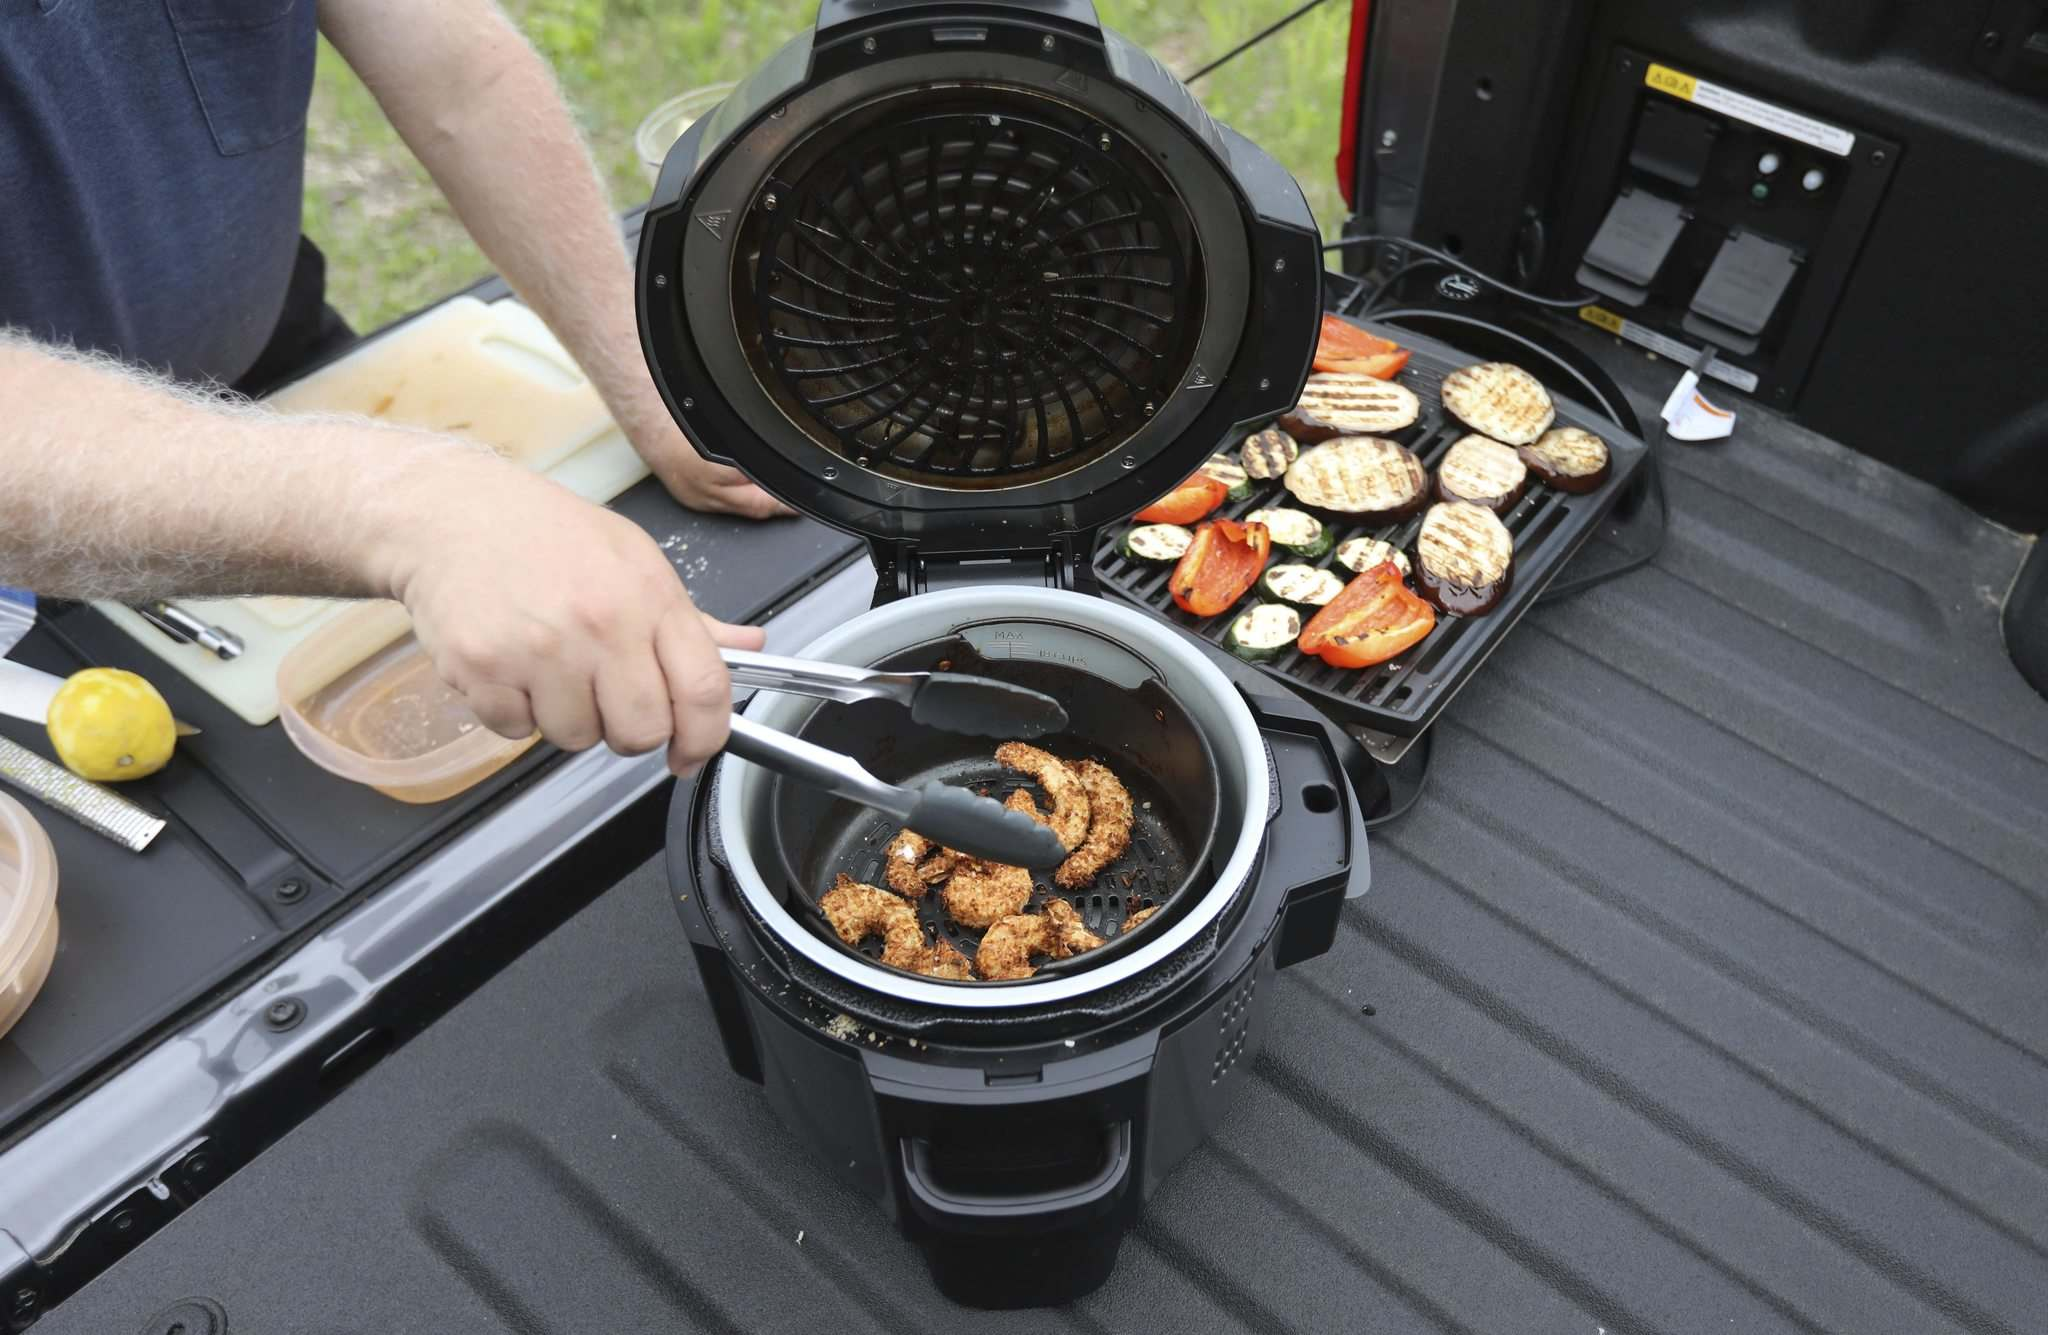 RUTH BONNEVILLE / WINNIPEG FREE PRESS</p><p>ENT - cooking with Ford F-150</p><p>Subject: F-150 PowerBoost Hybrid and lunch</p><p>Landing the F-150 on the food page by using the electric outlets located on the plate bed of the Electric truck to prepare lunch outside.</p><p>Details: Will be cooking lunch using the hybrid truck's 7.6-kW on-board power. Air-fryer coconut shrimp with mango chutney, grilled summer vegetable salad, air-fryer apple fritter for dessert, virgin strawberry margarita. Come hungry.</p><p>Photos of kitchen set up in the bed, the truck in its 'wild' surroundings, candids of Kelly cooking, as well as prepared food photos.Grilled veggies and coconut shrimp.</p><p>For the food page: Wed., June 23</p><p>June 16,, 2021</p></p>